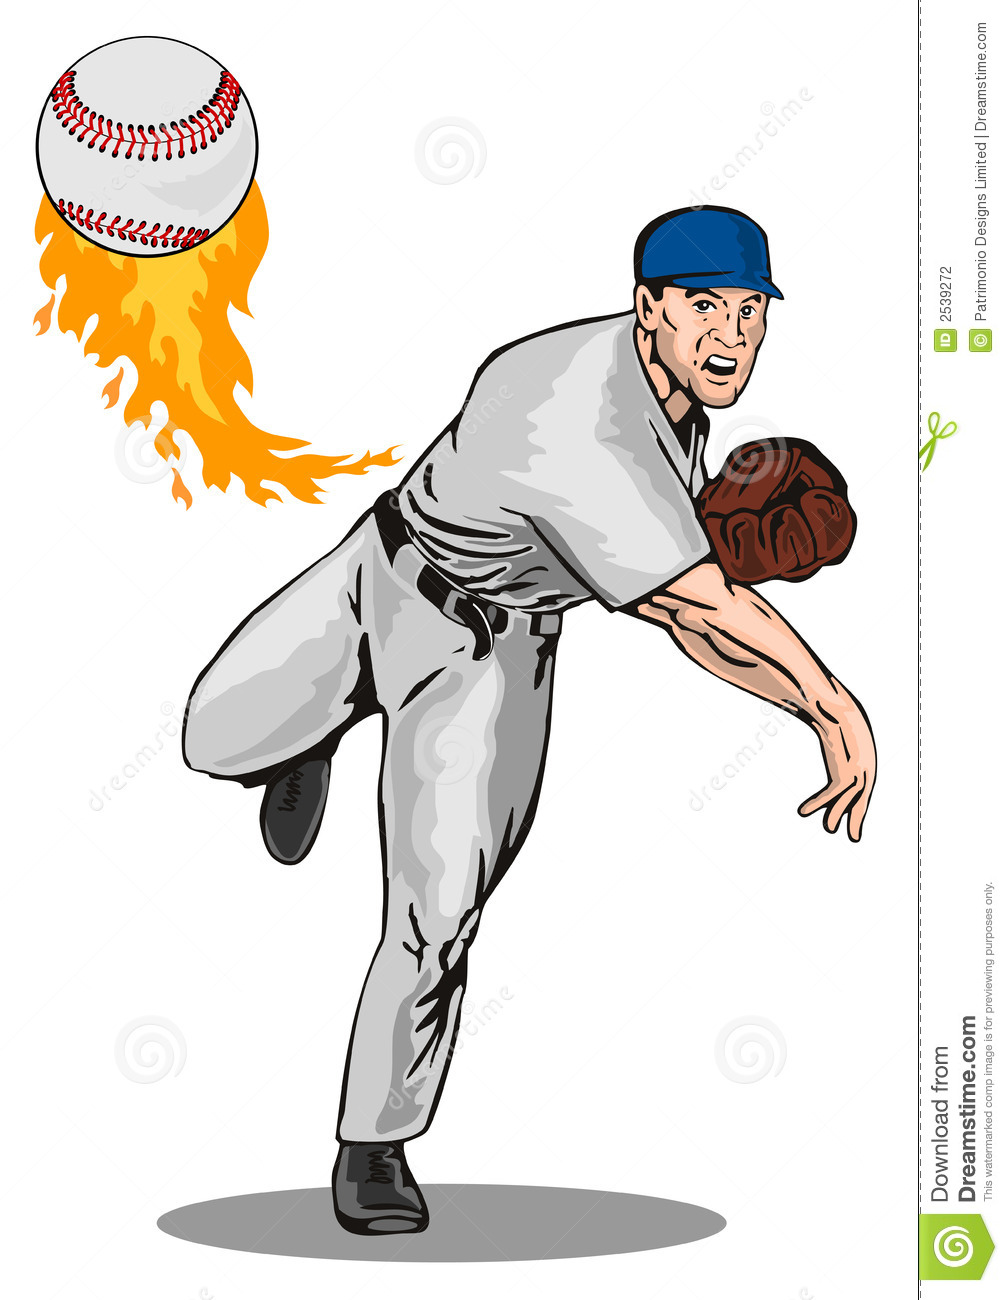 Vector art of a baseball pitcher delivering a strike.